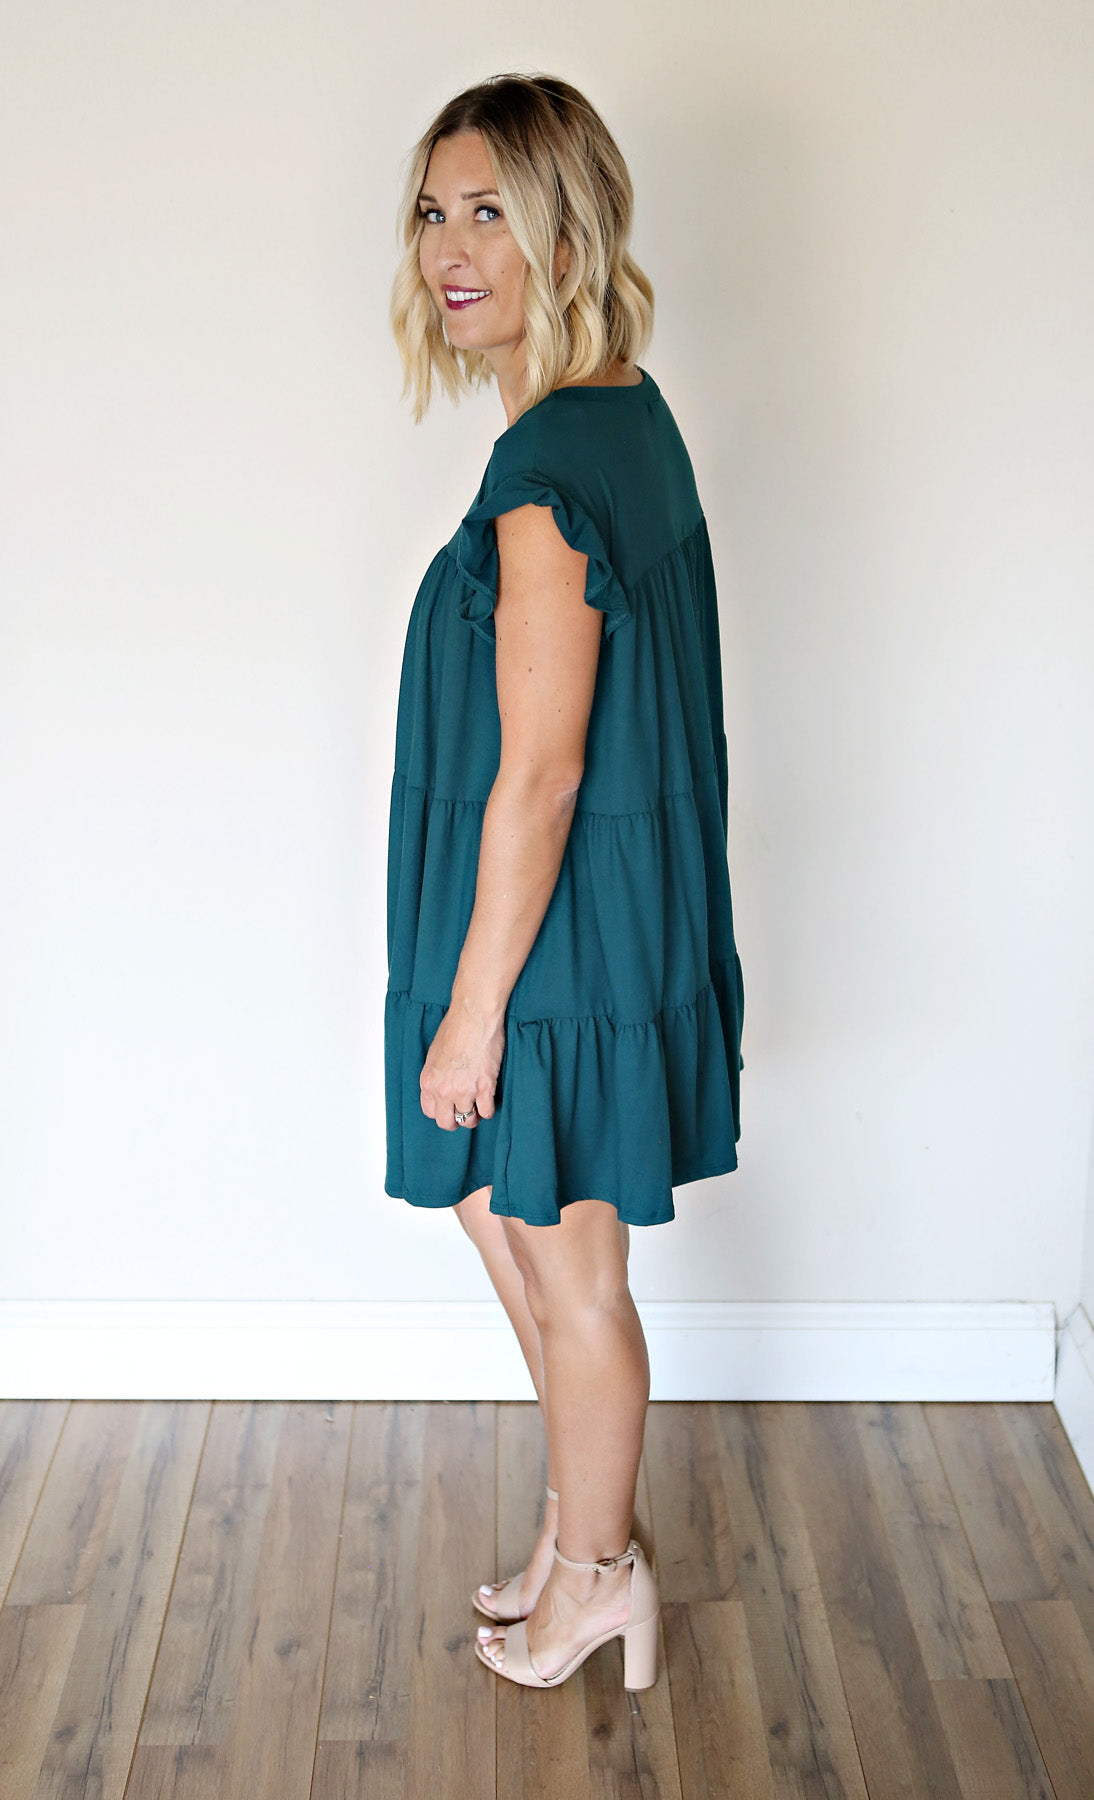 Charlotte Dress - Green - Gray Monroe